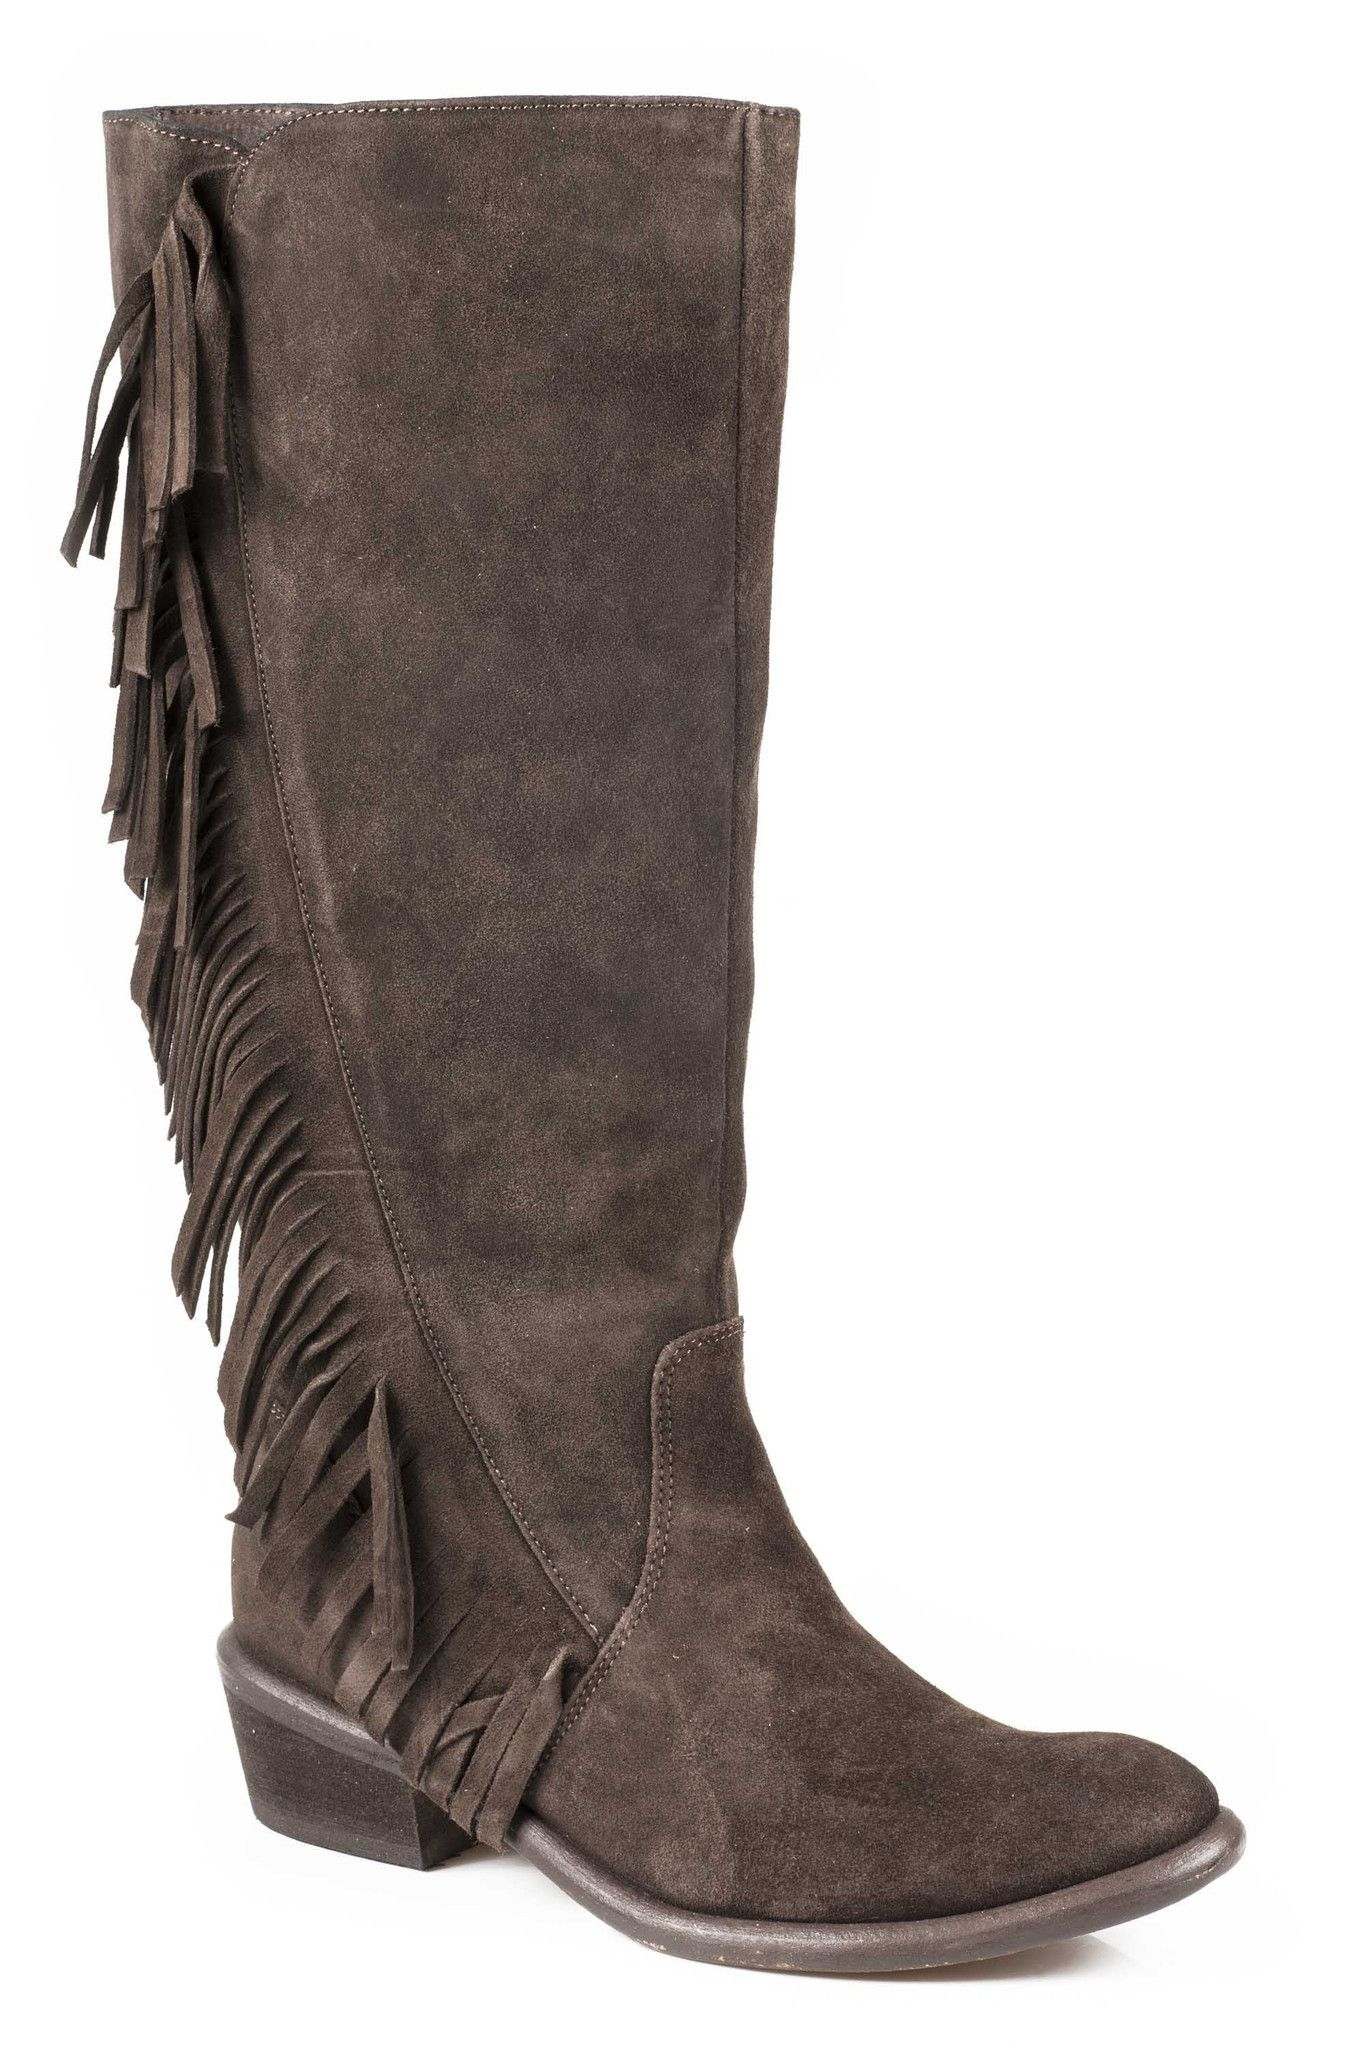 Roper Ladies Fashion Round Toe Boots 15 Suede Fringe Boot